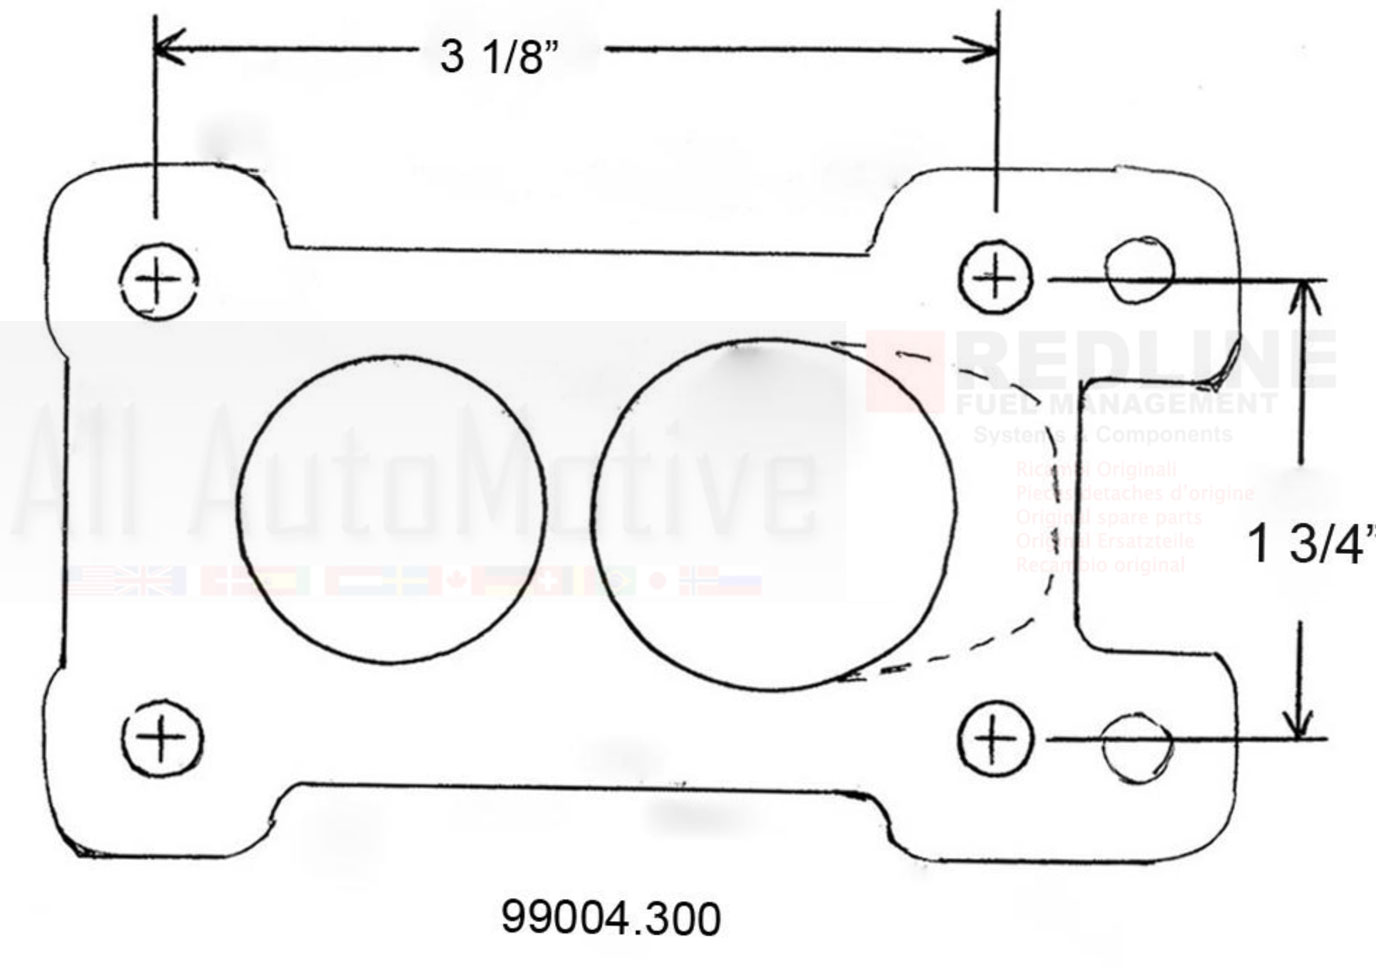 271126149735 further 142132188910 in addition Briggs And Stratton Carburetor Linkage Diagram in addition Small Engine Gasket Diagram likewise Edelbrock 1406 Carburetor Linkage. on carburetor linkage clips